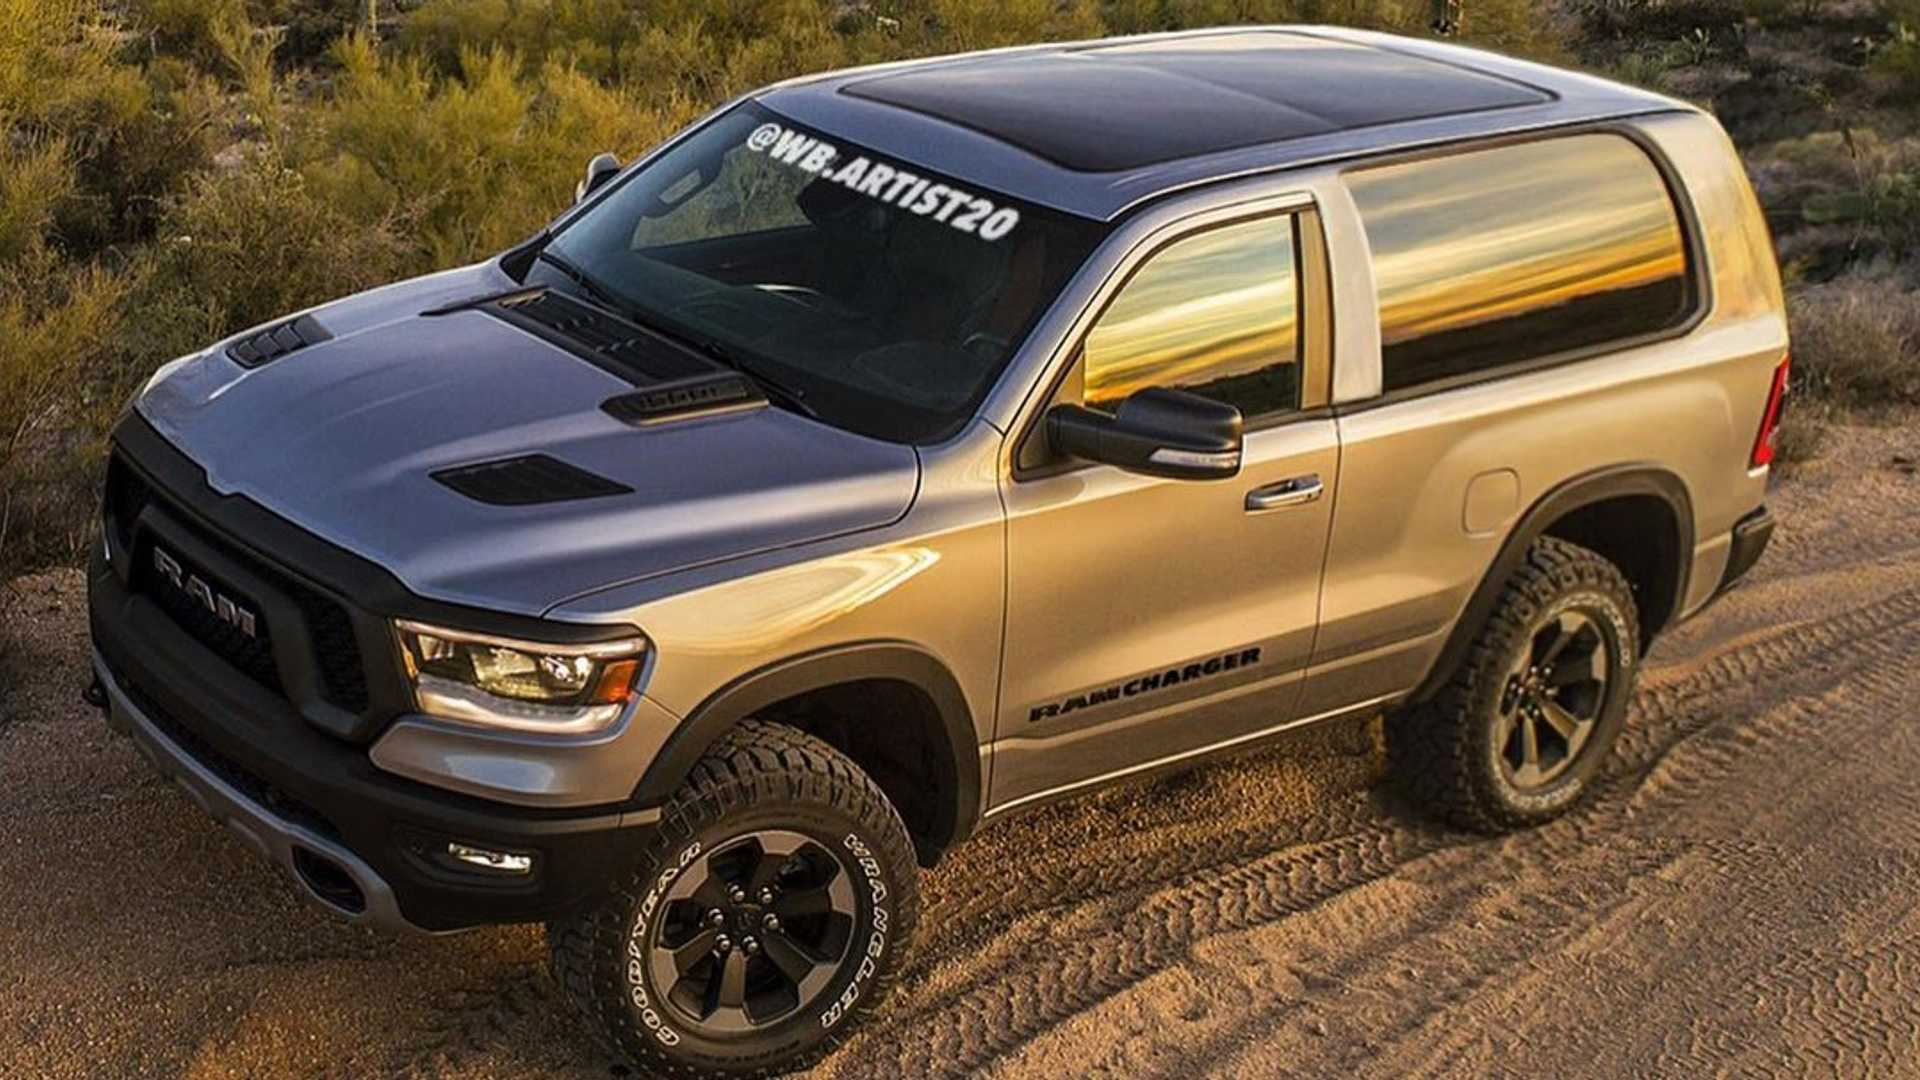 2020 Ramcharger Price, Design and Review